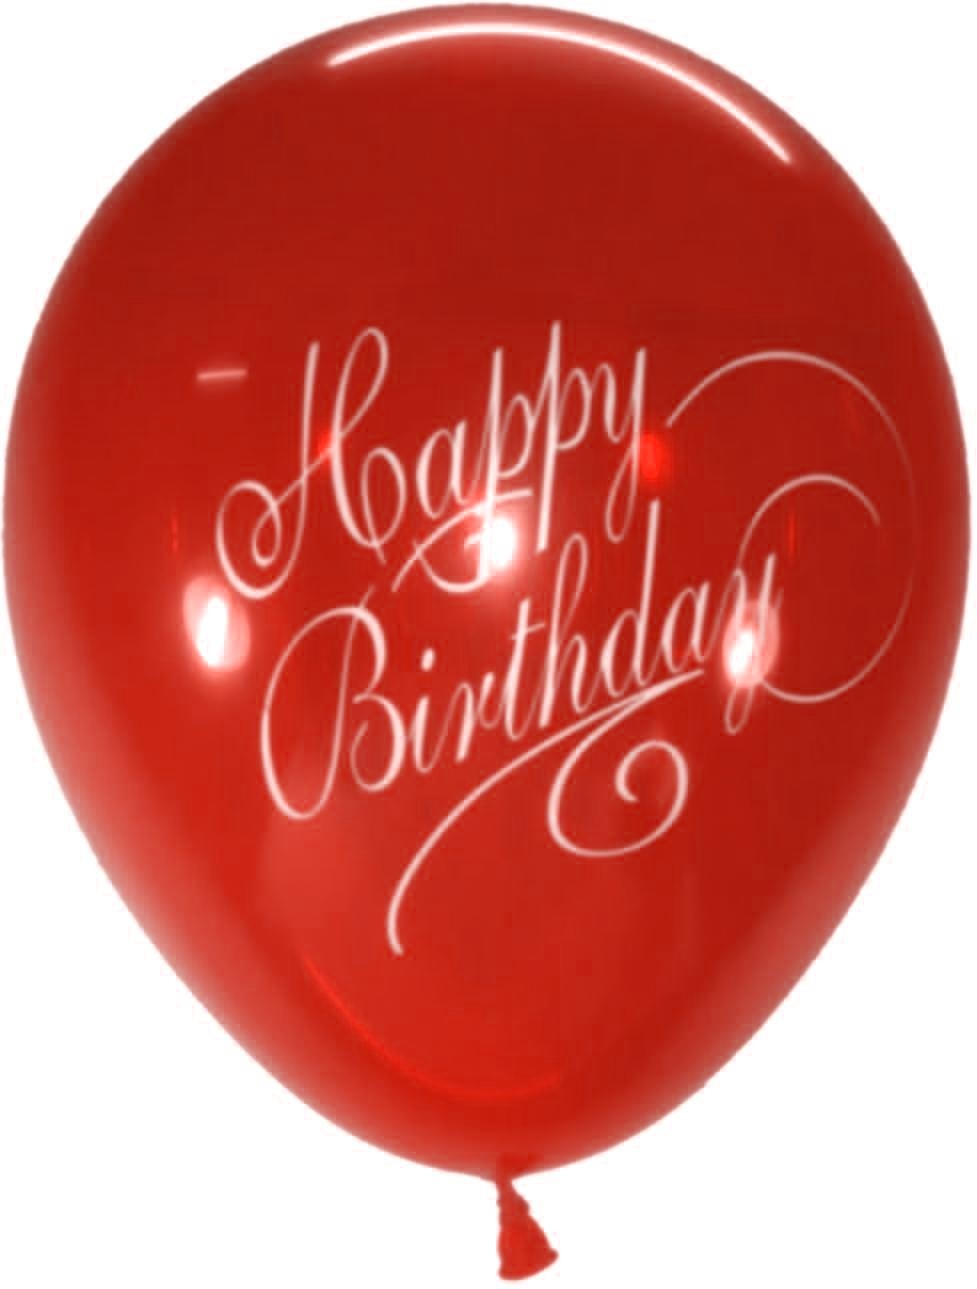 Stylish Happy B'day Latex Balloons (Red) - Pack of 5